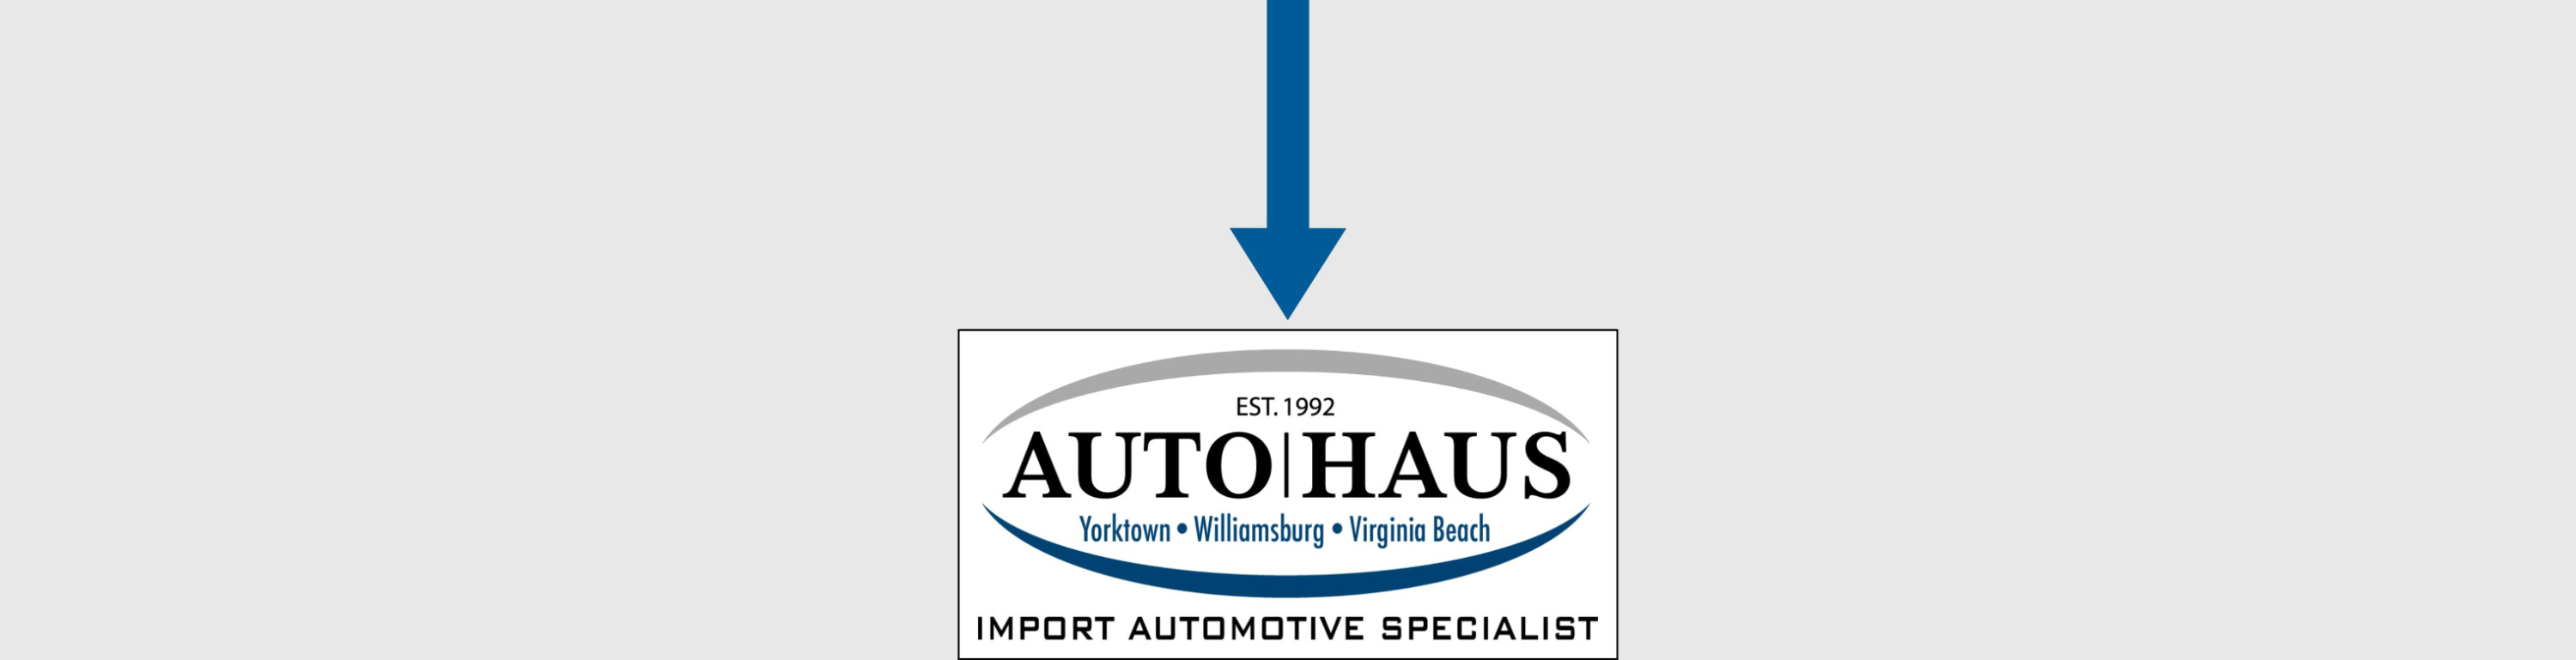 Auto Haus of Virginia History Image for Logo